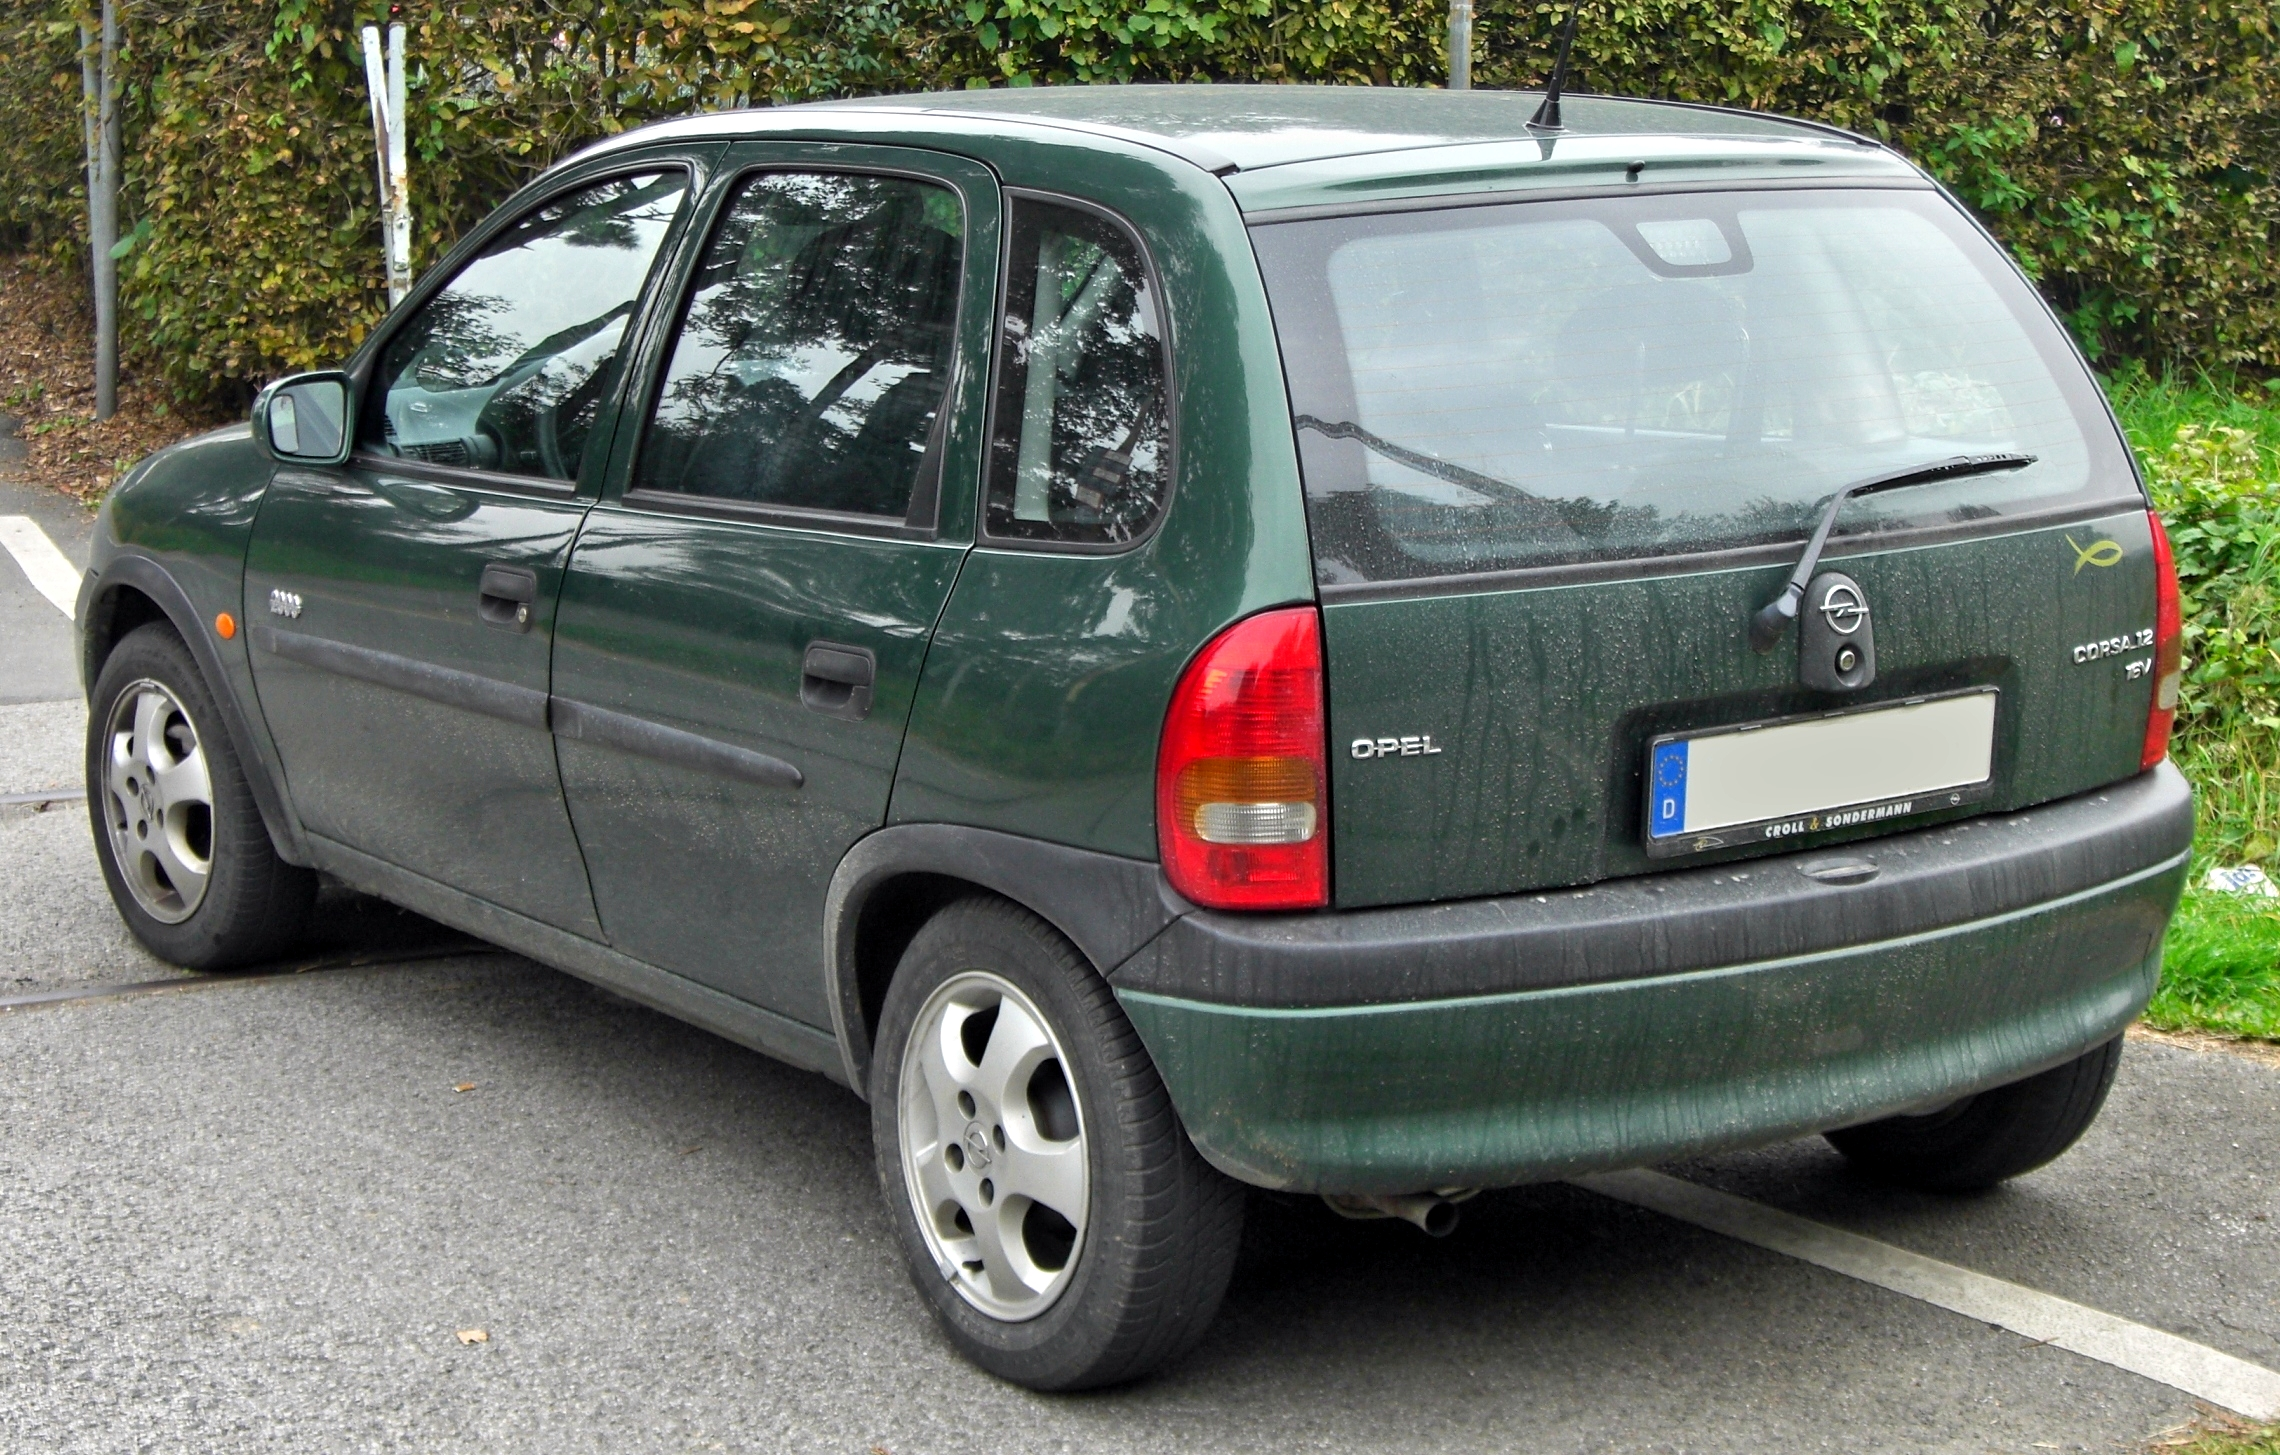 opel corsa 1 2 16v technical details history photos on better parts ltd